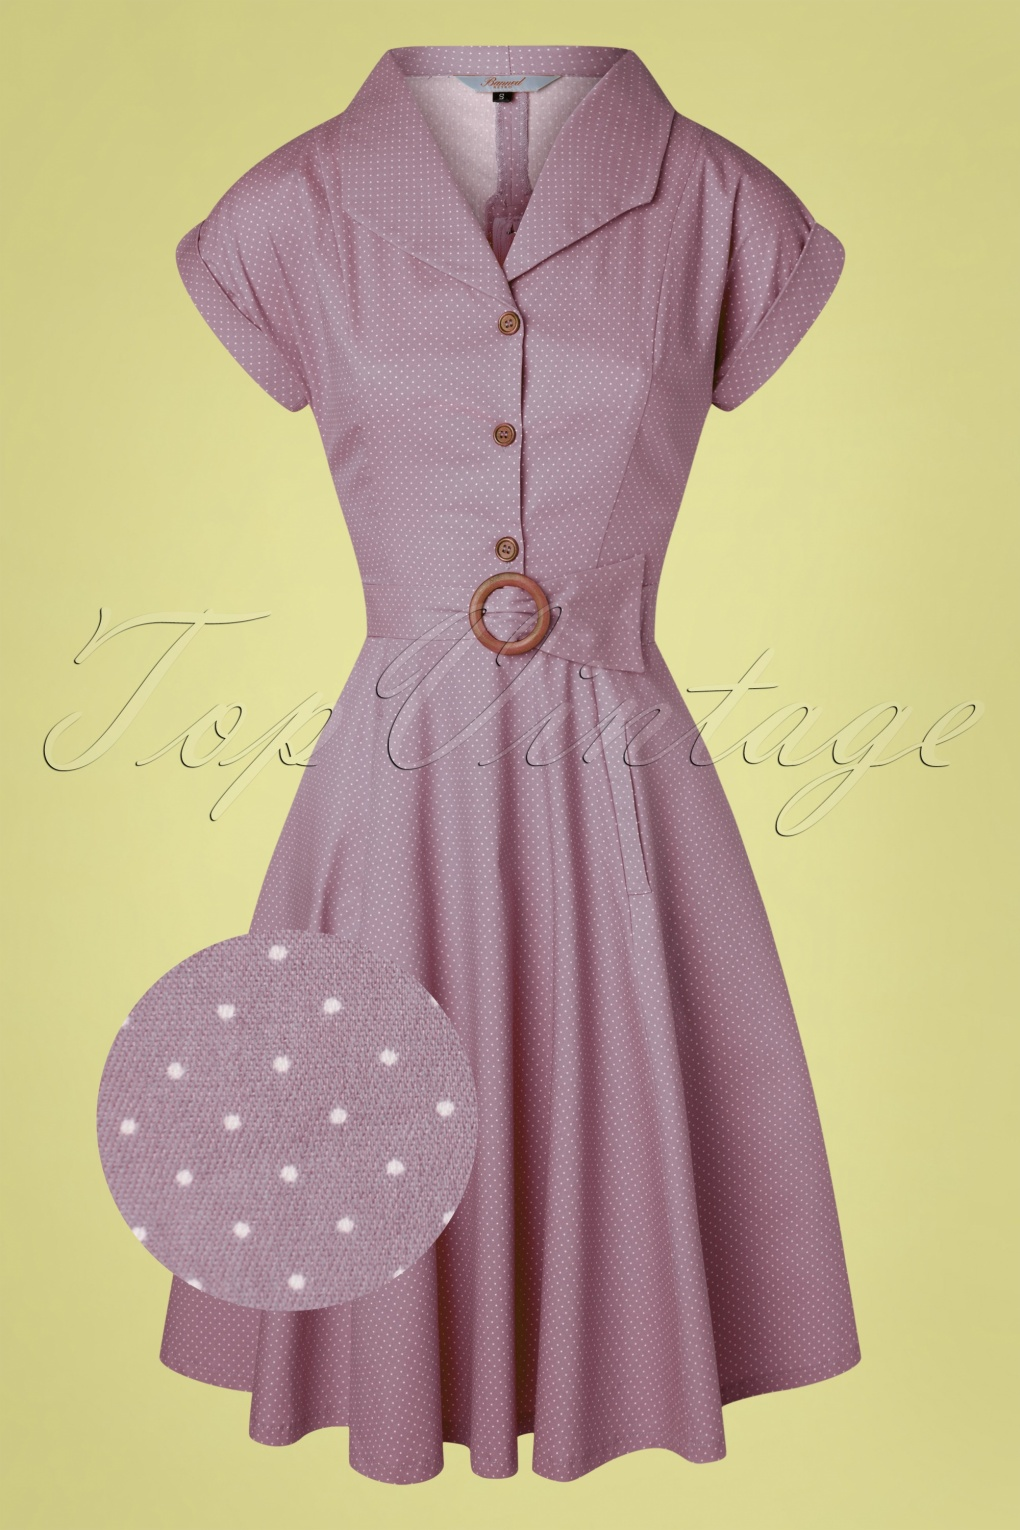 1940s Day Dress Styles, House Dresses 40s Spot Perfection Fit and Flare Swing Dress in Lilac £24.95 AT vintagedancer.com